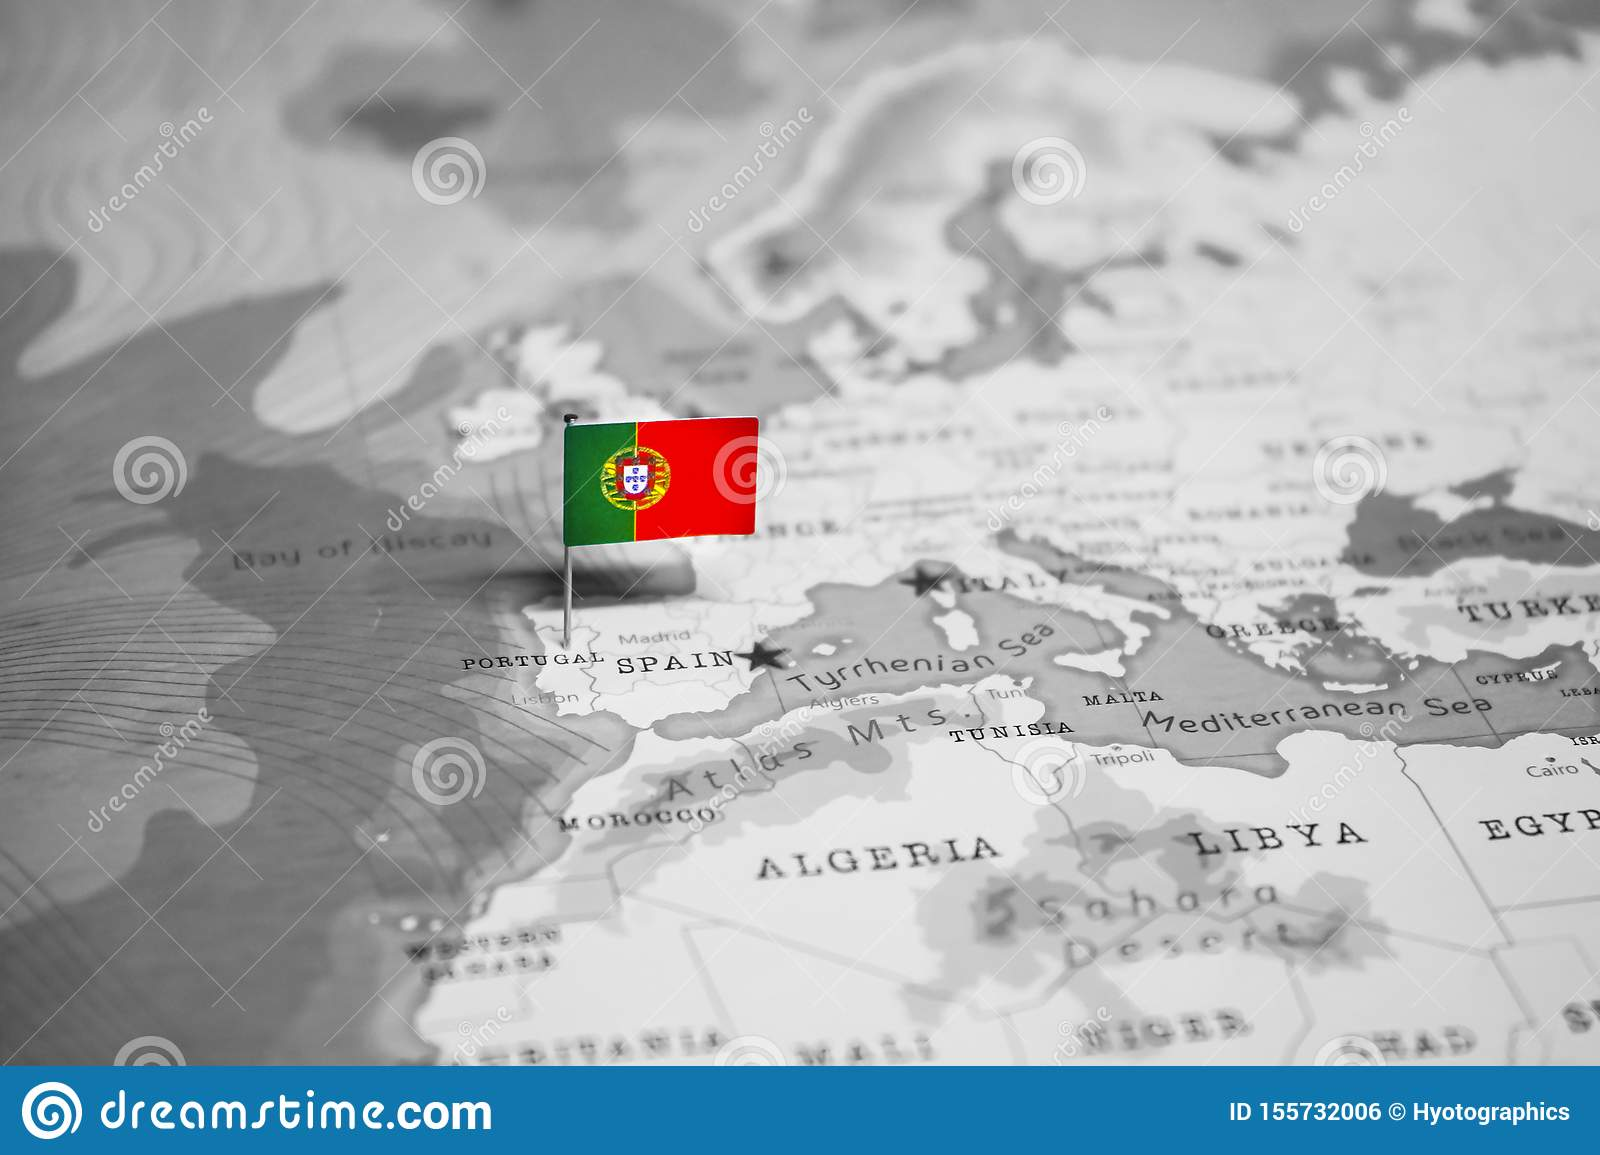 Picture of: The Flag Of Portugal In The World Map Stock Photo Image Of Departure Government 155732006